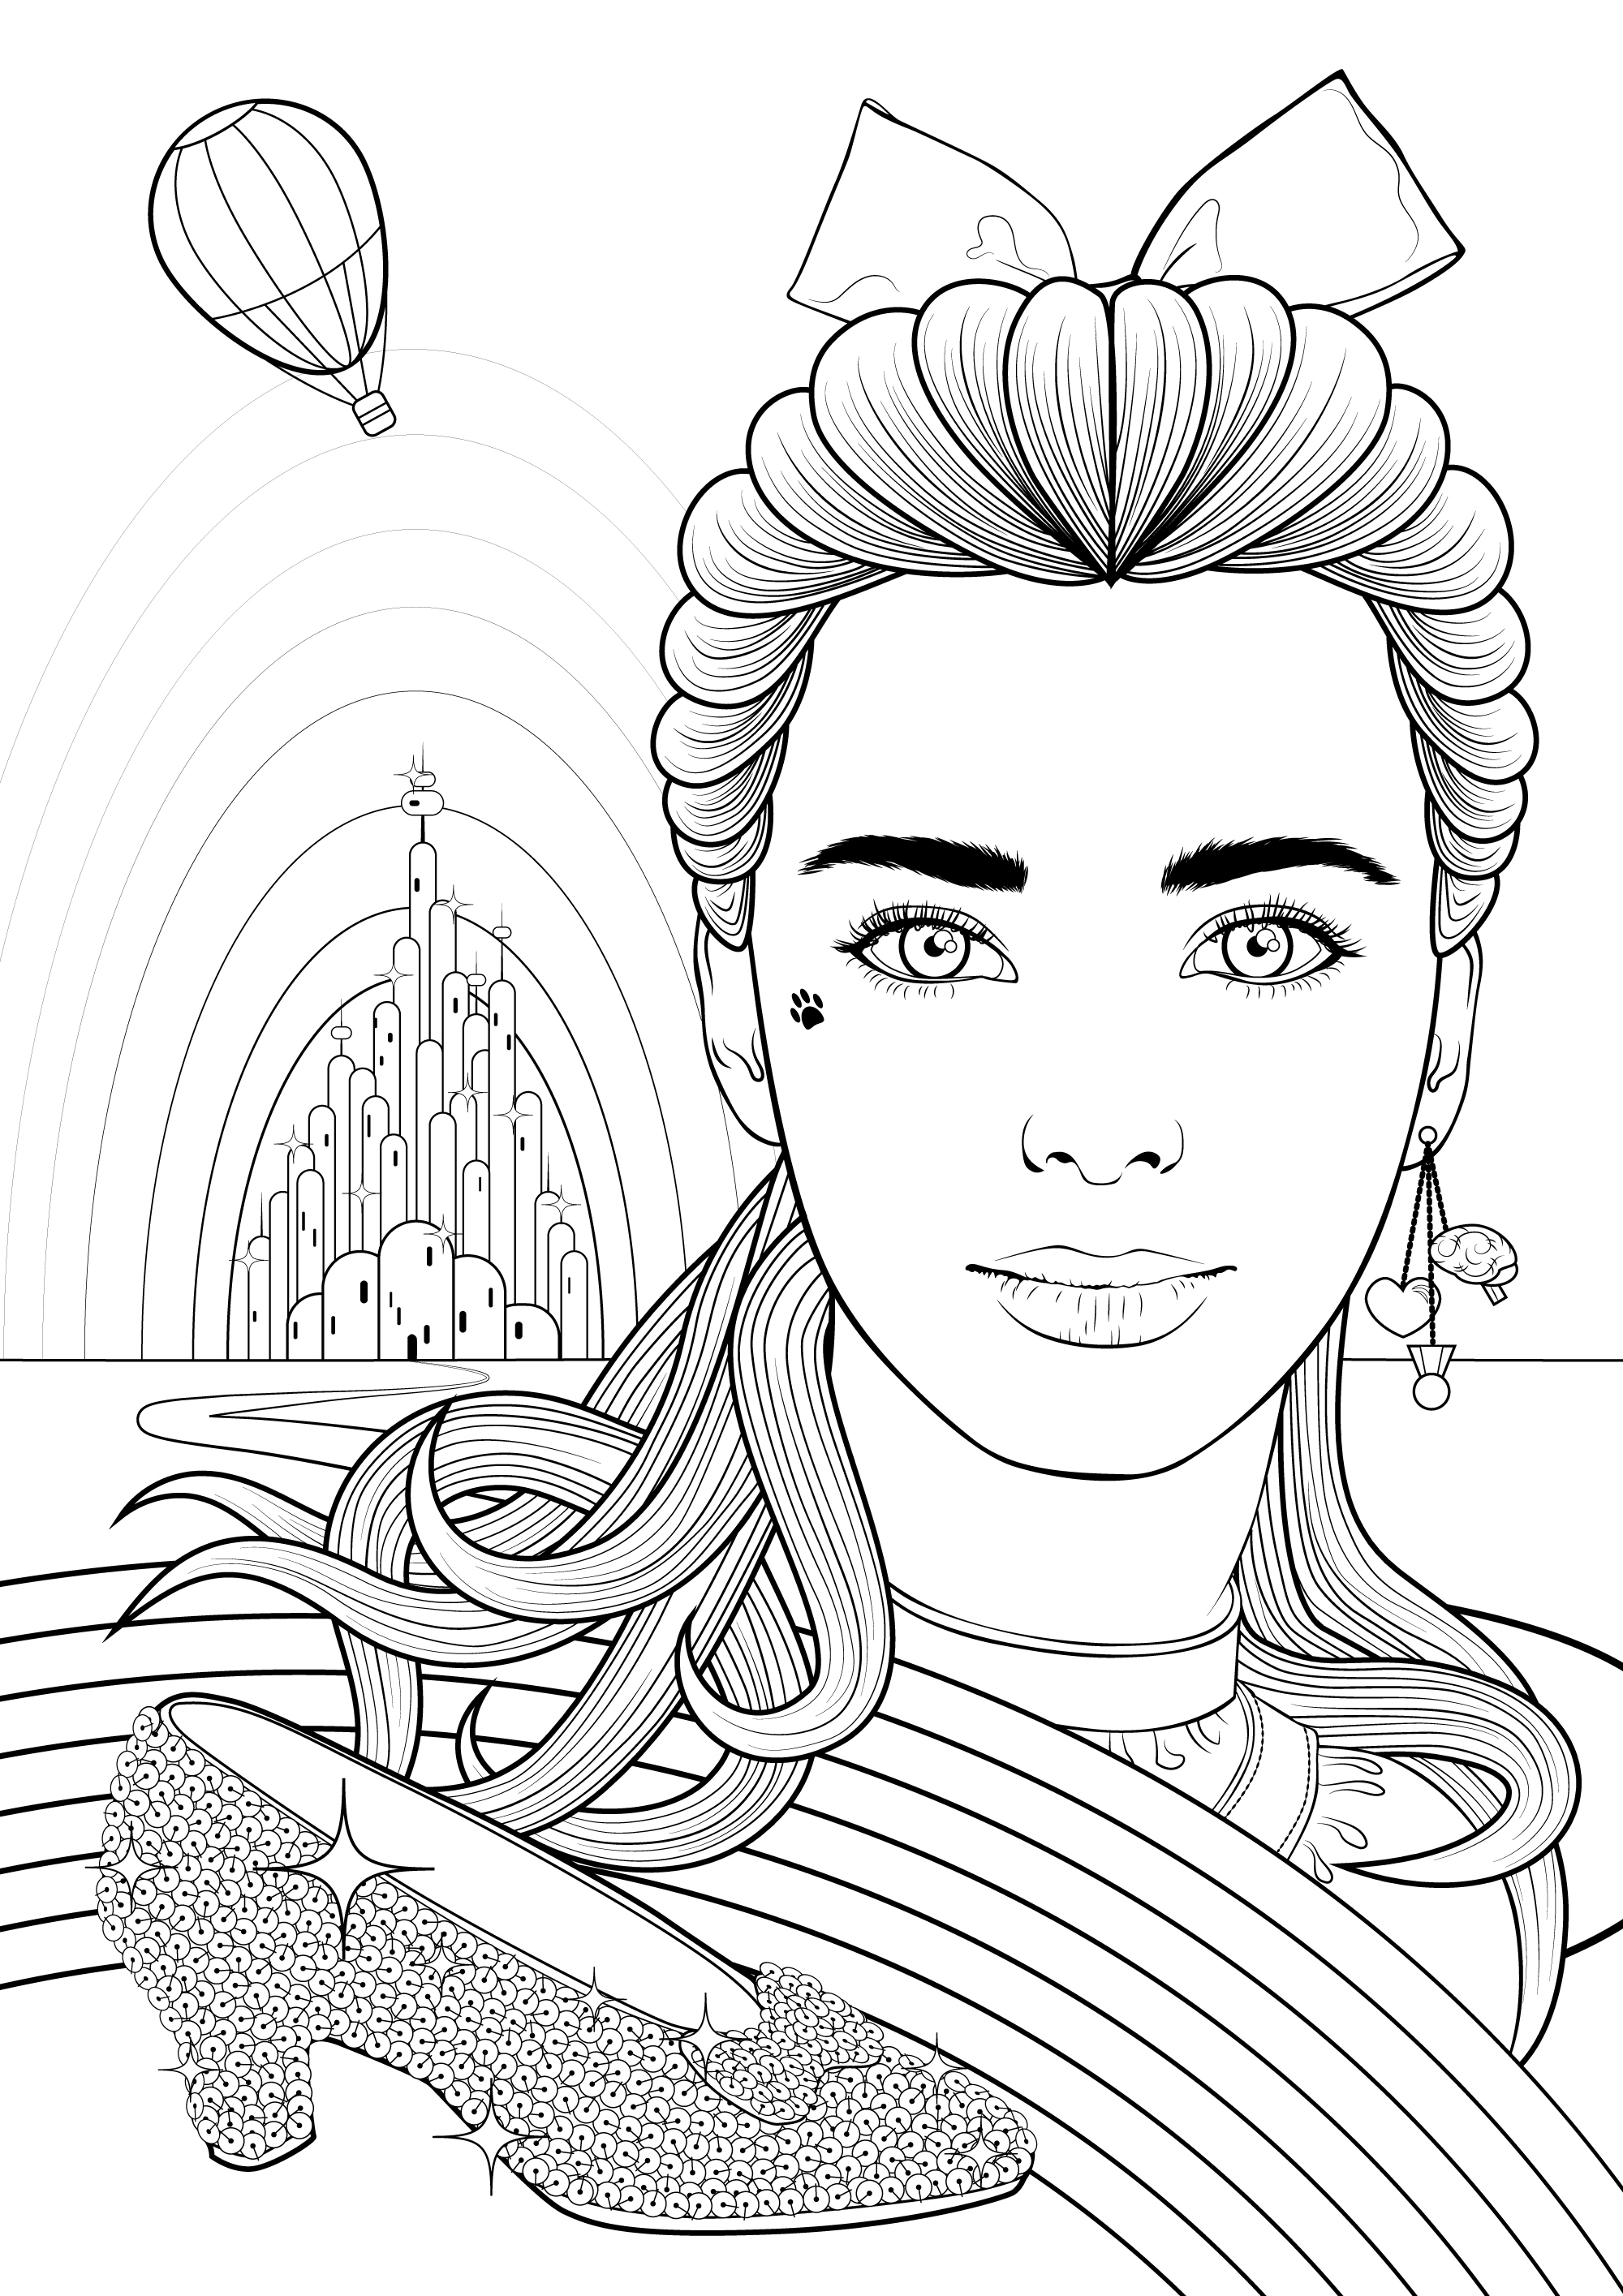 Create a Colouring Book Style Illustration of Dorothy Gale